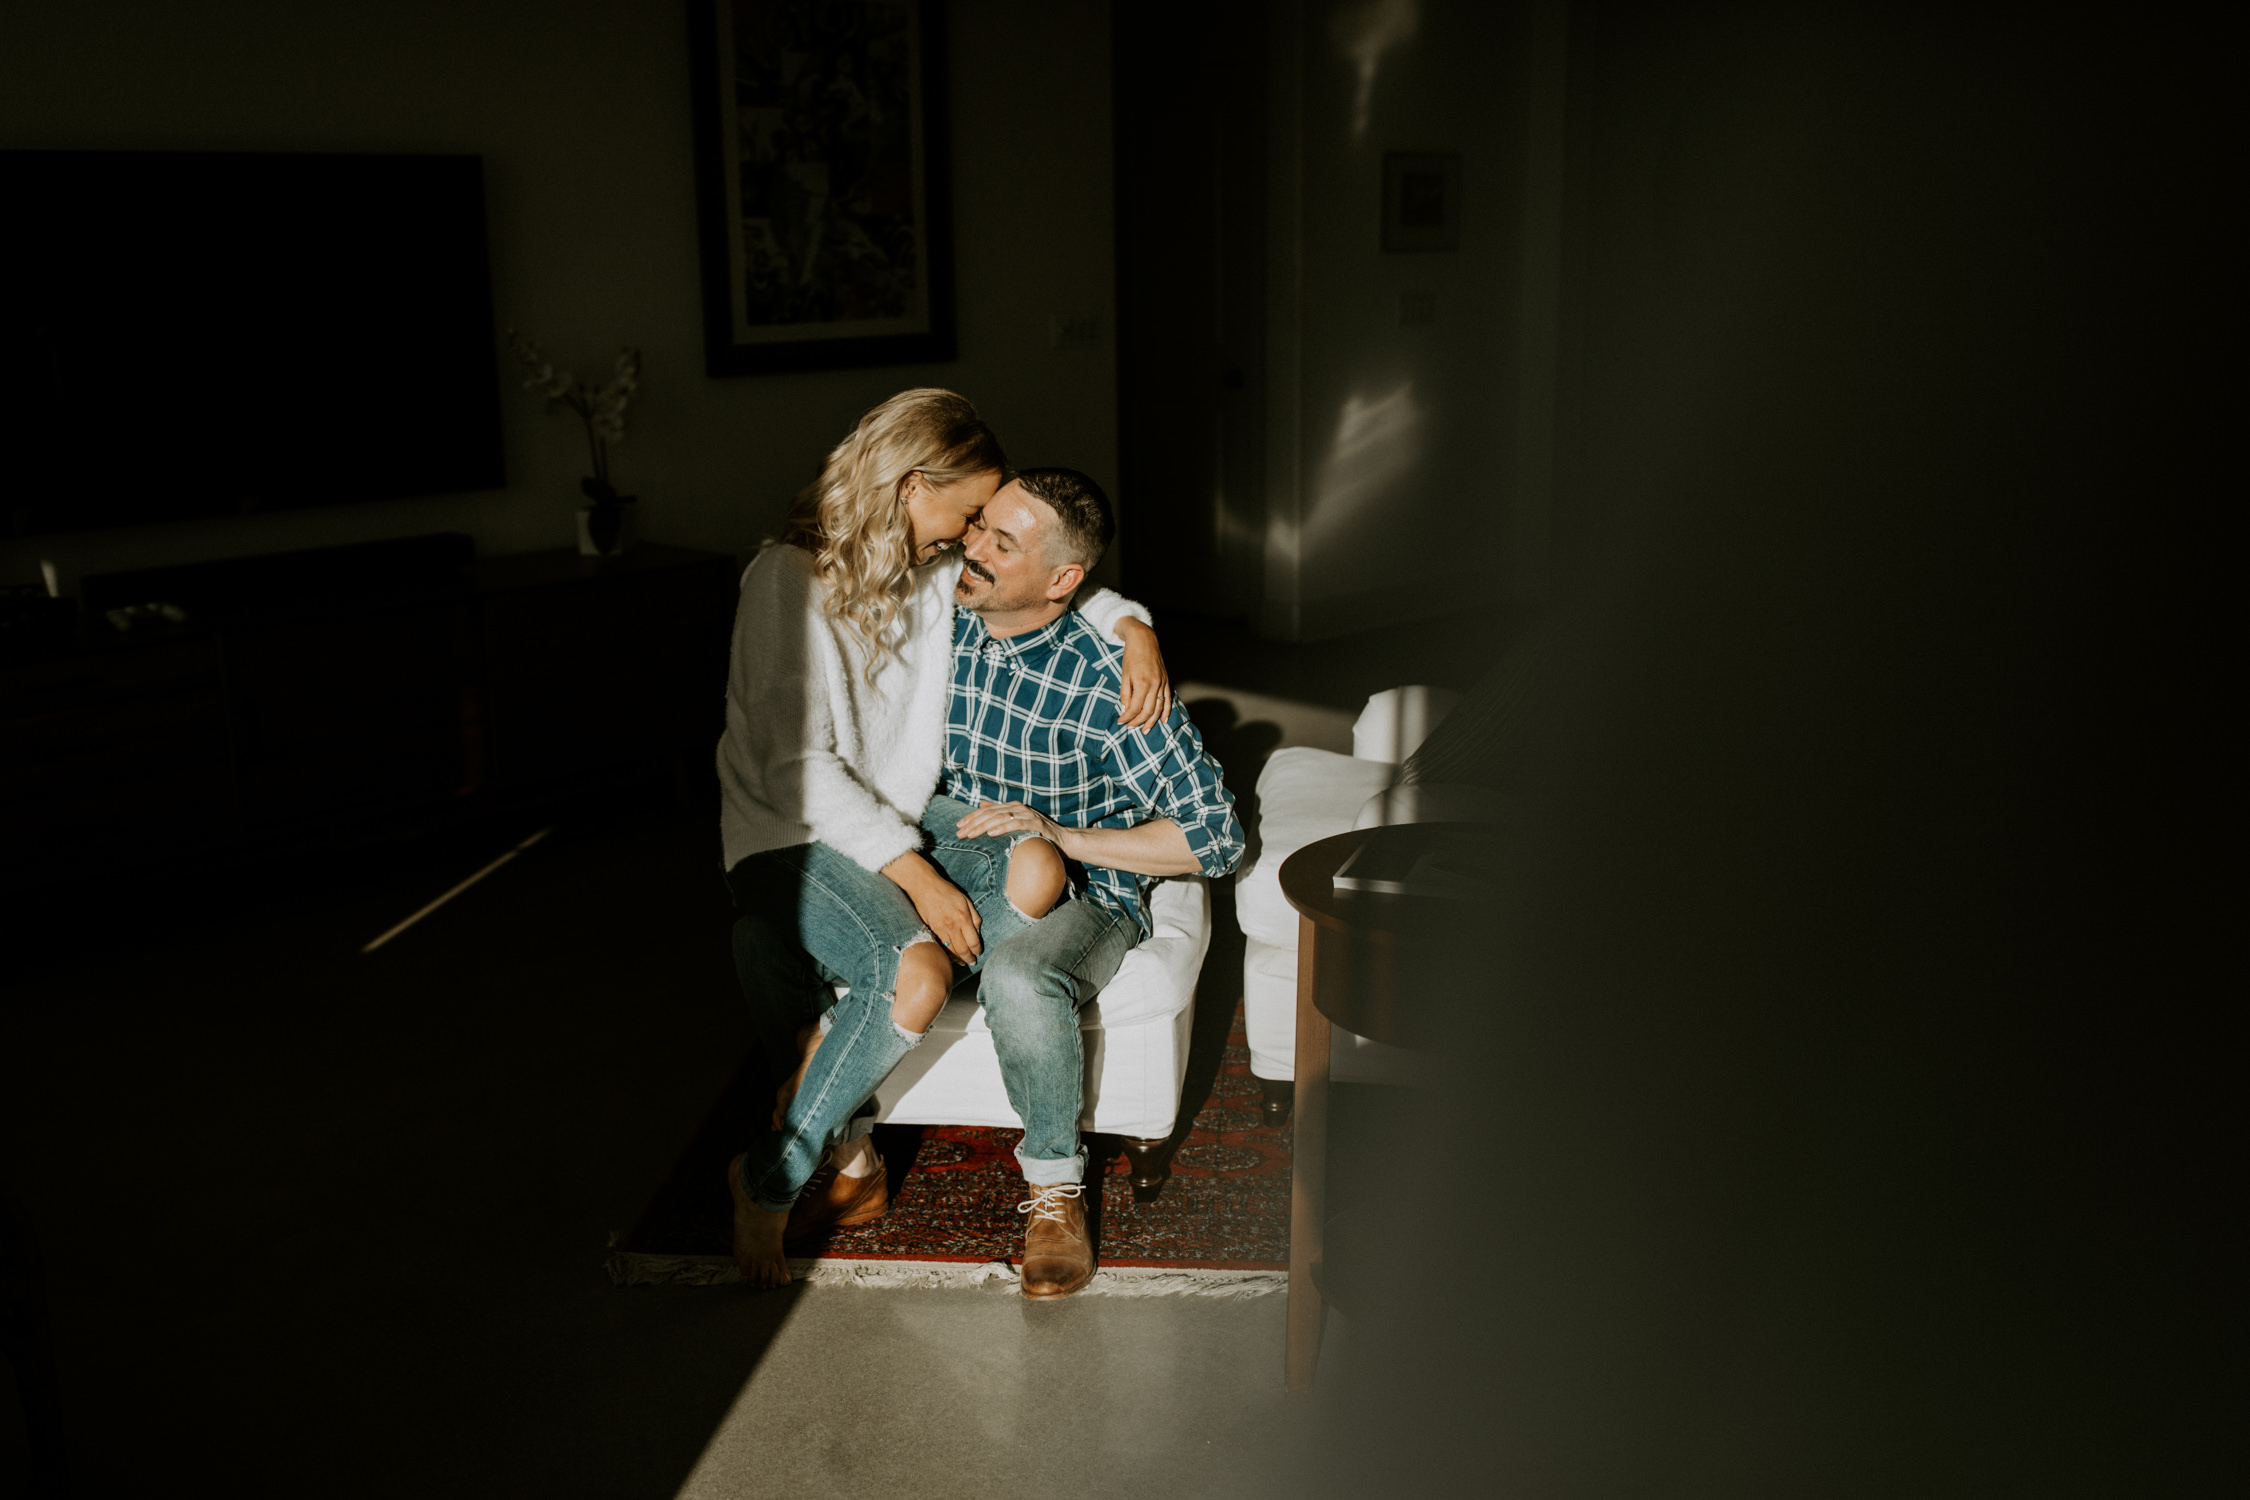 couple-intimate-in-home-session-northern-california-2.jpg